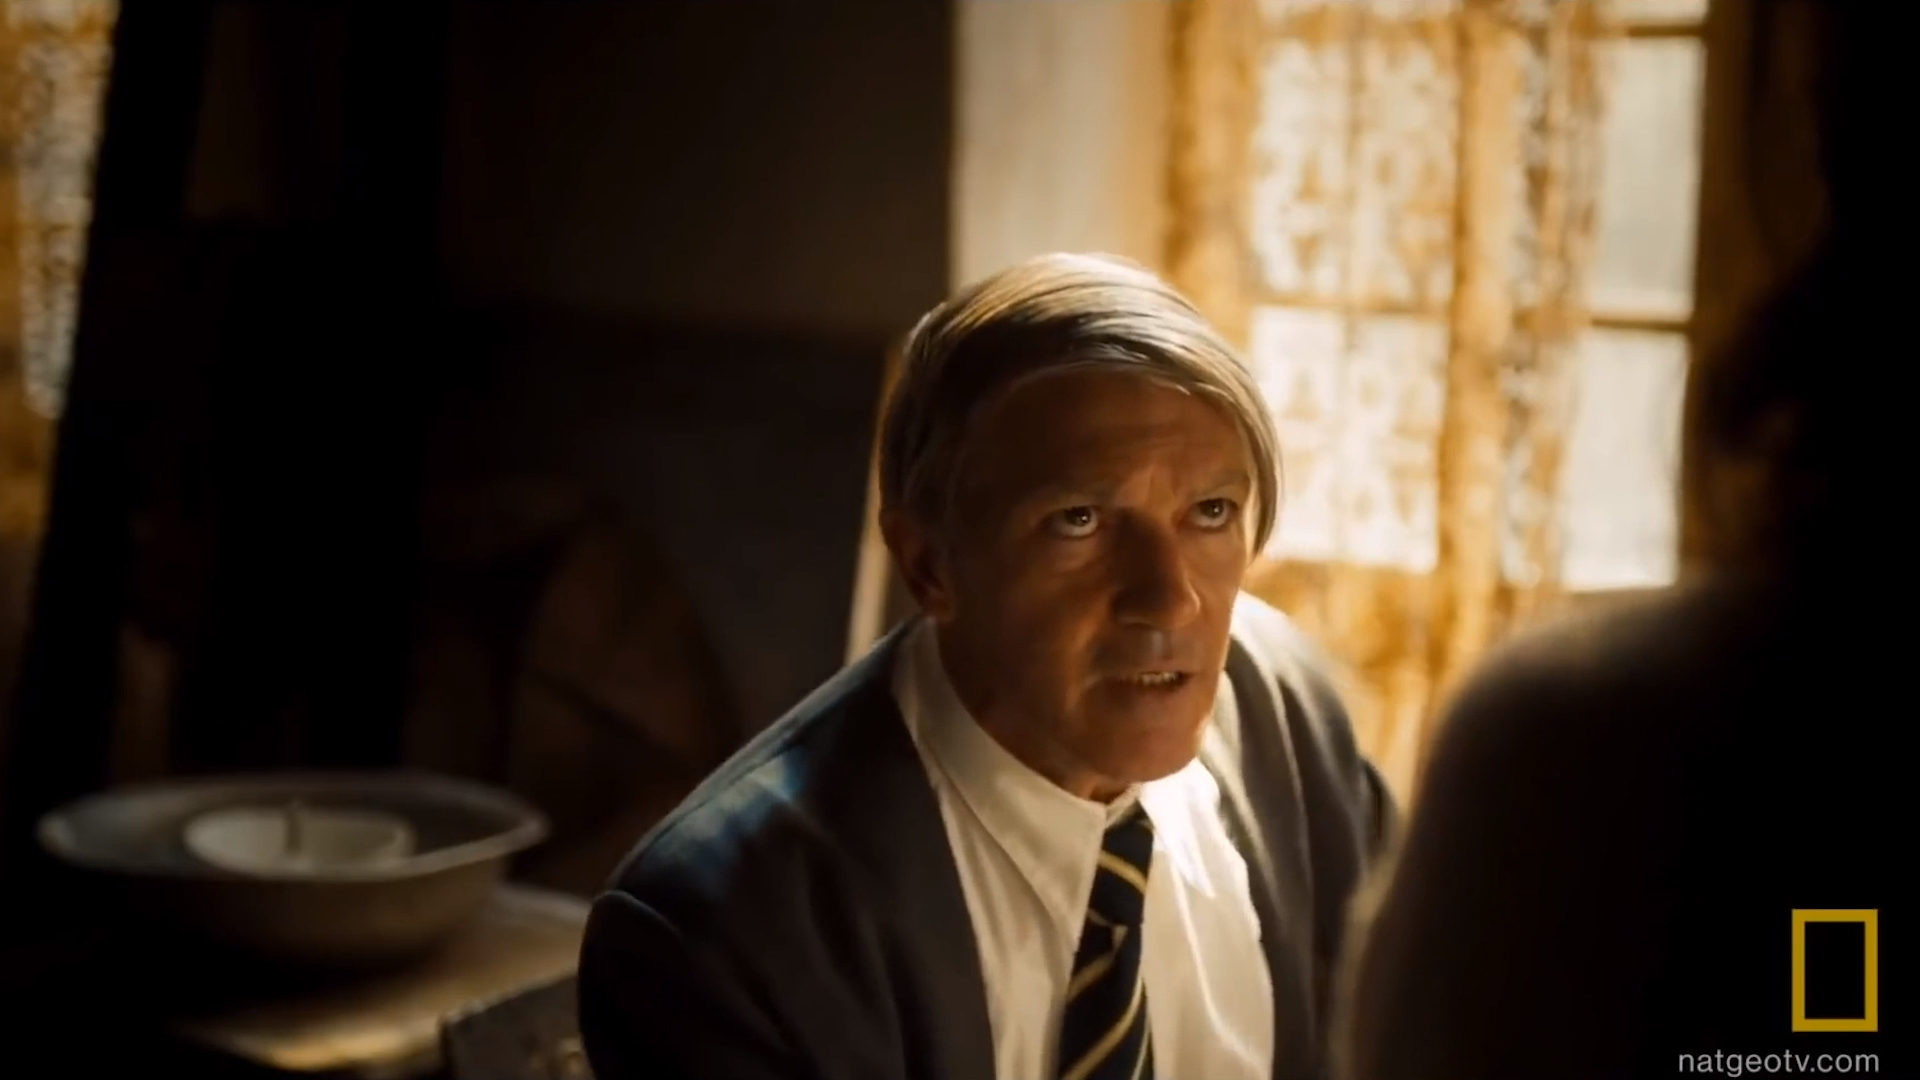 Antonio Banderas takes on the role of Pablo Picasso in 'Genius'